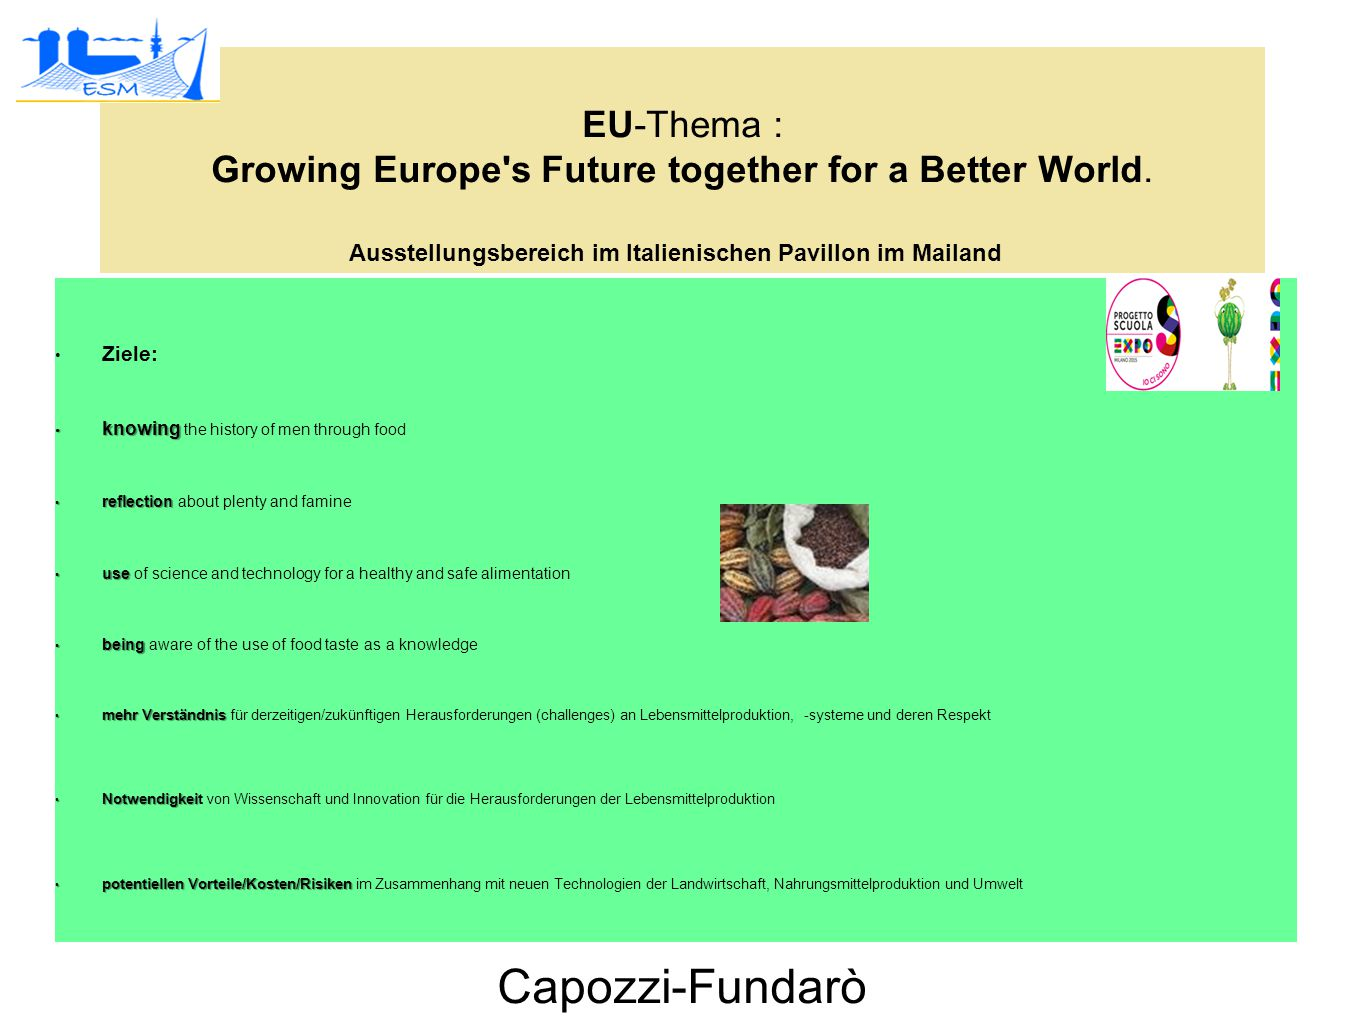 EU-Thema : Growing Europe s Future together for a Better World.